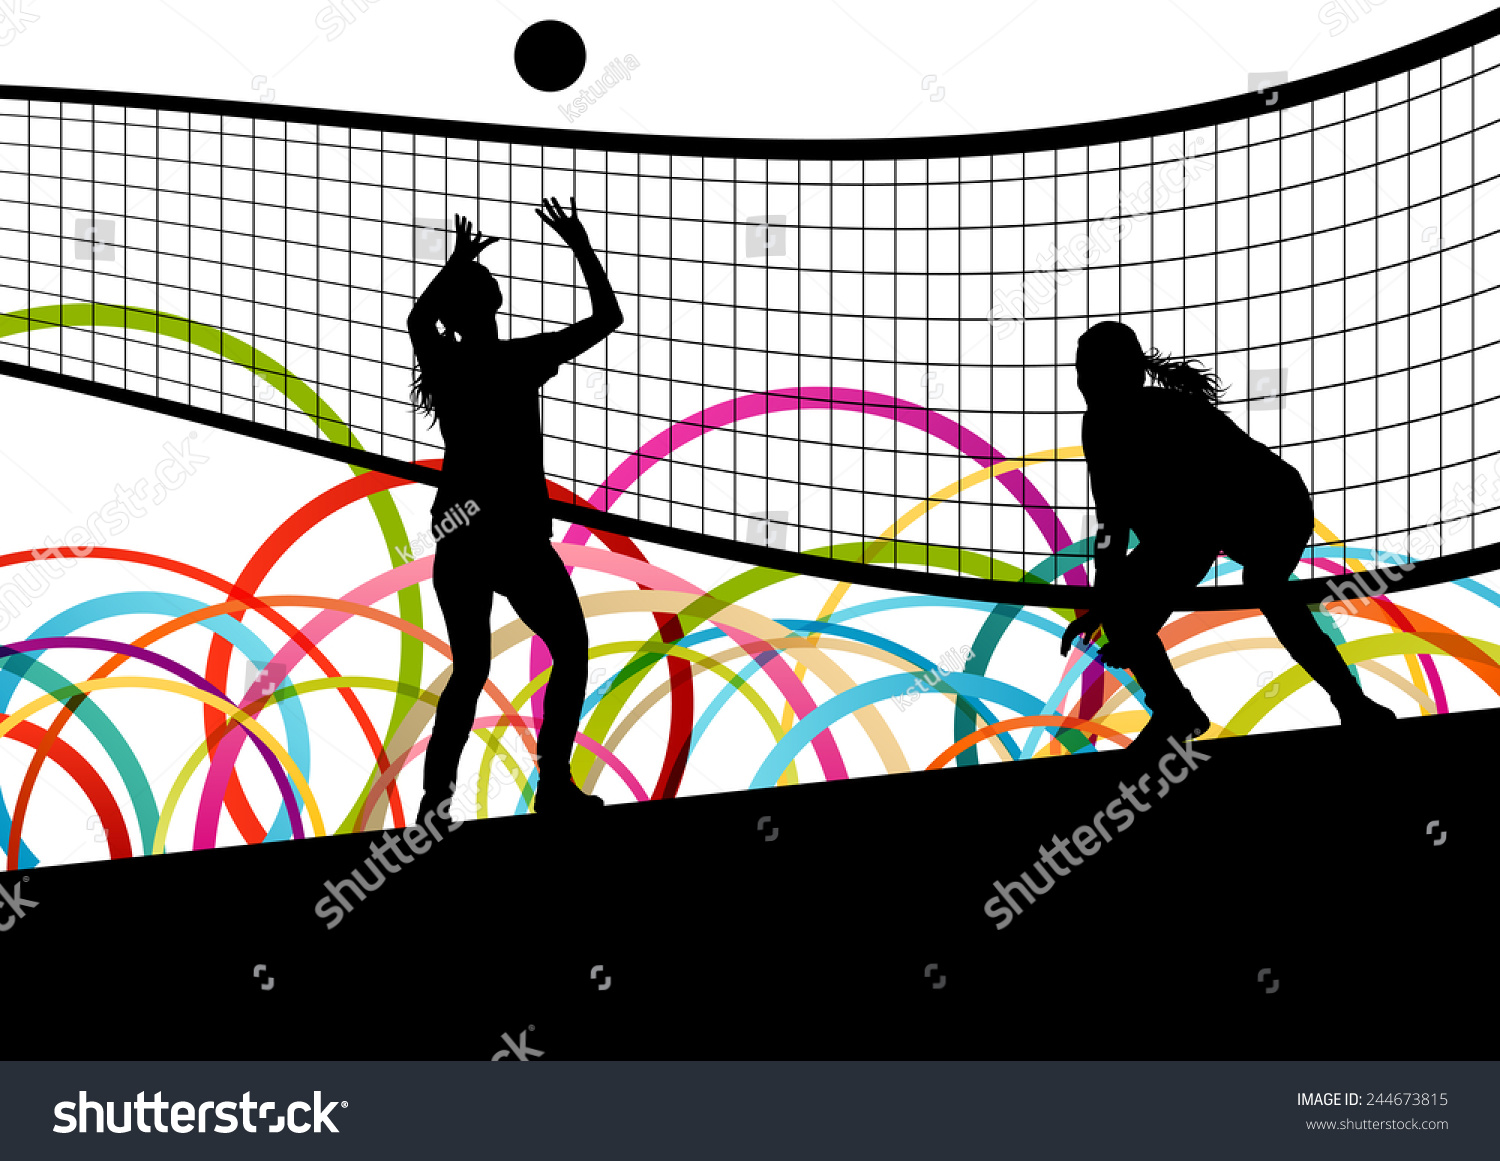 Illustration Abstract Volleyball Player Silhouette: Active Young Women Volleyball Player Sport Stock Vector